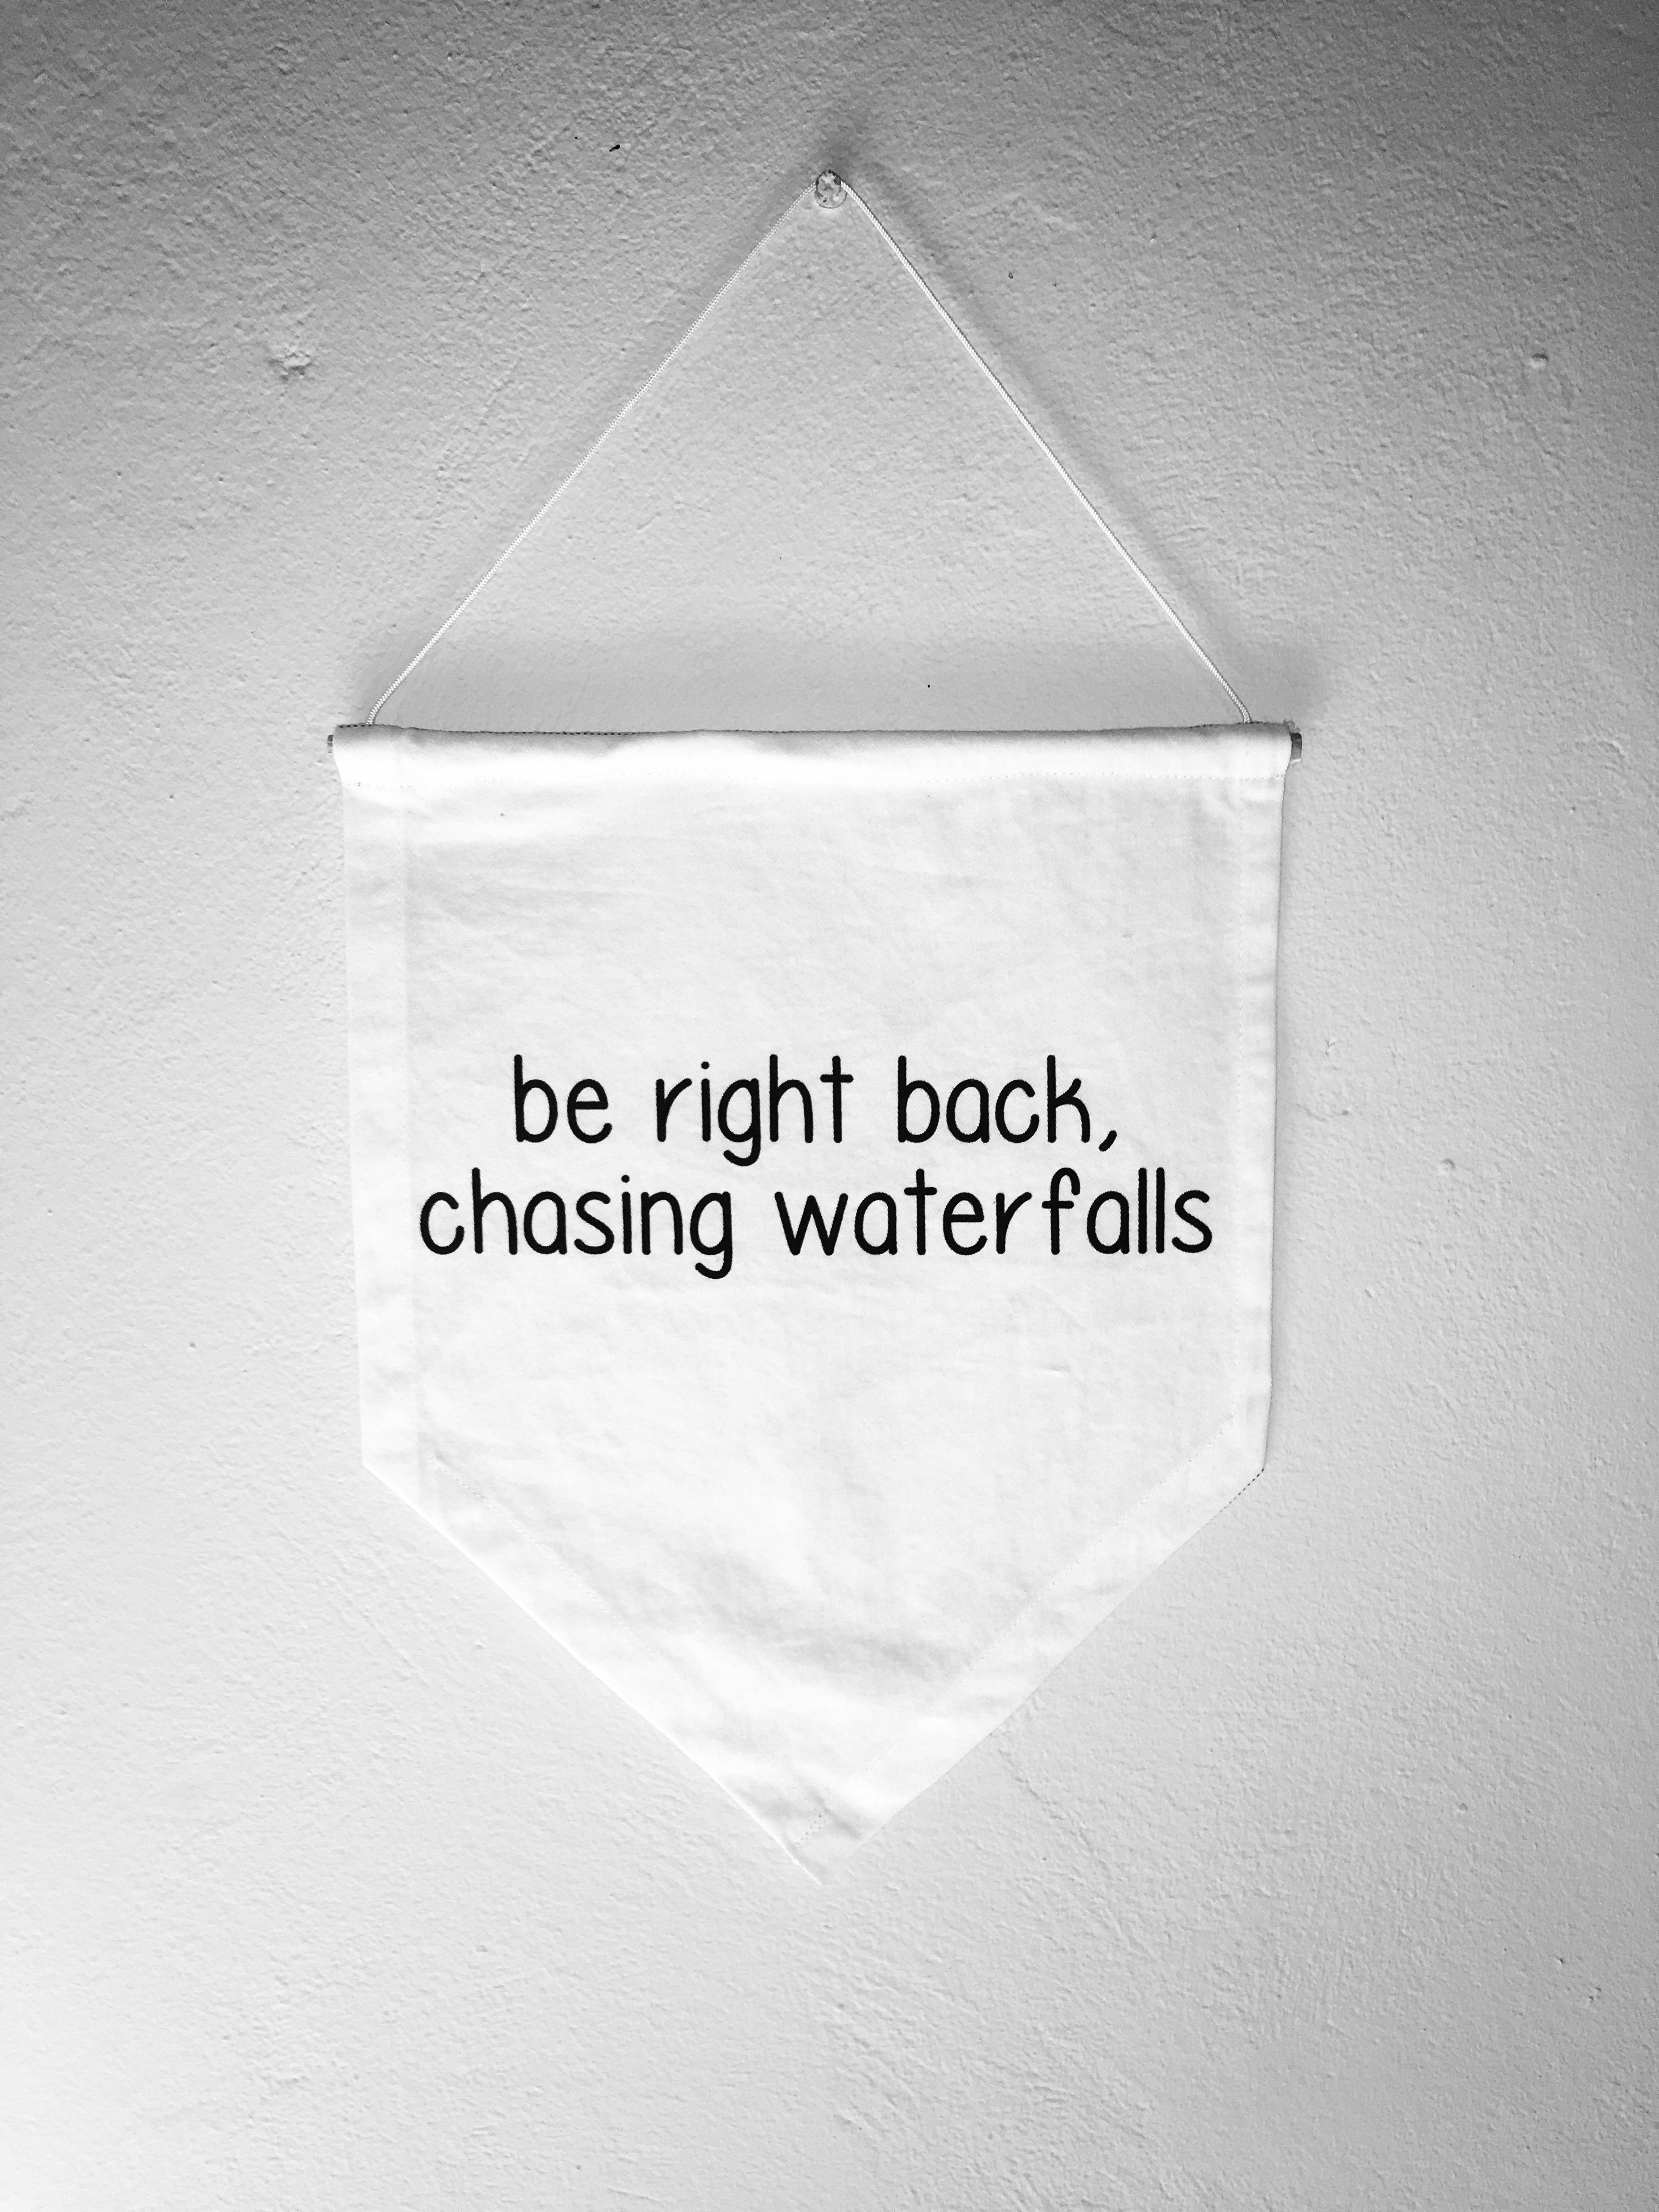 Be Right Back Chasing Waterfalls. Happy, Motivational Quote